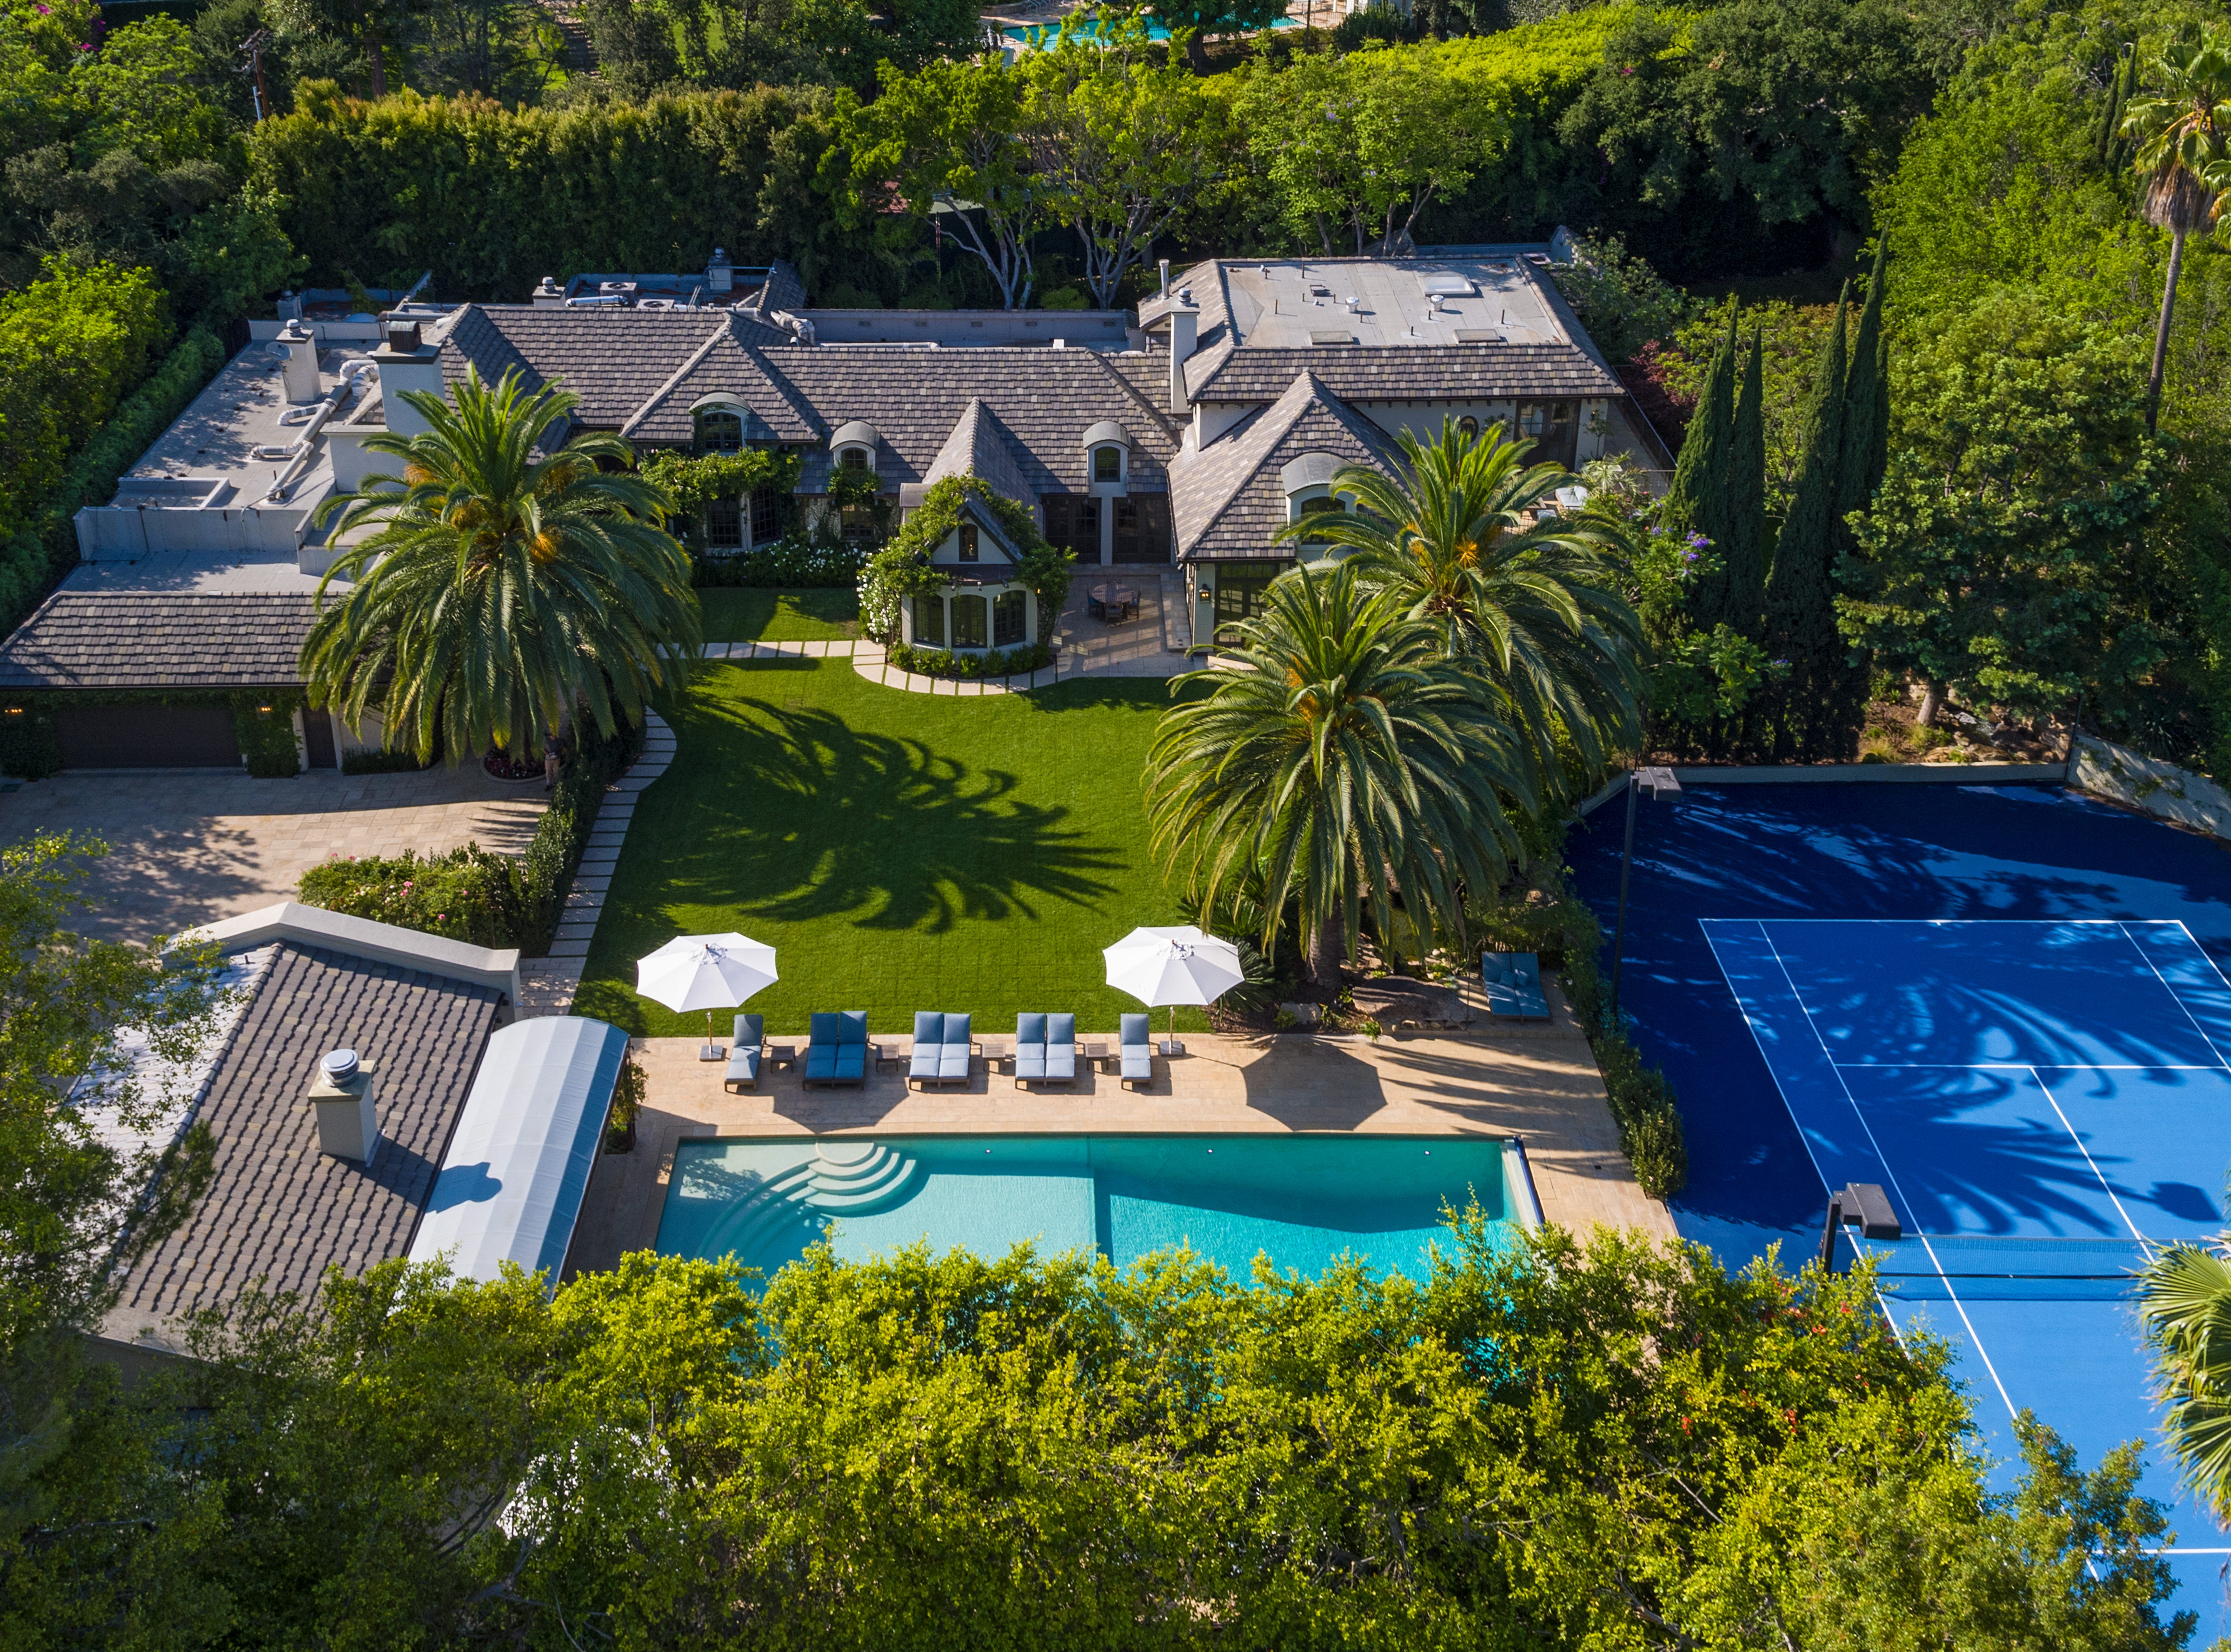 If Madonna could see her former Sunset Boulevard home today, she'd probably want to buy it back, says TopTenRealEstateDeals.com.  She bought it in 2003 for $12 million when she married Guy Ritchie and listed it for sale in 2012 for $28 million, selling it in 2013 for $19.5 million. Since then it has transformed to one of Beverly Hills best homes, priced at $35 million.